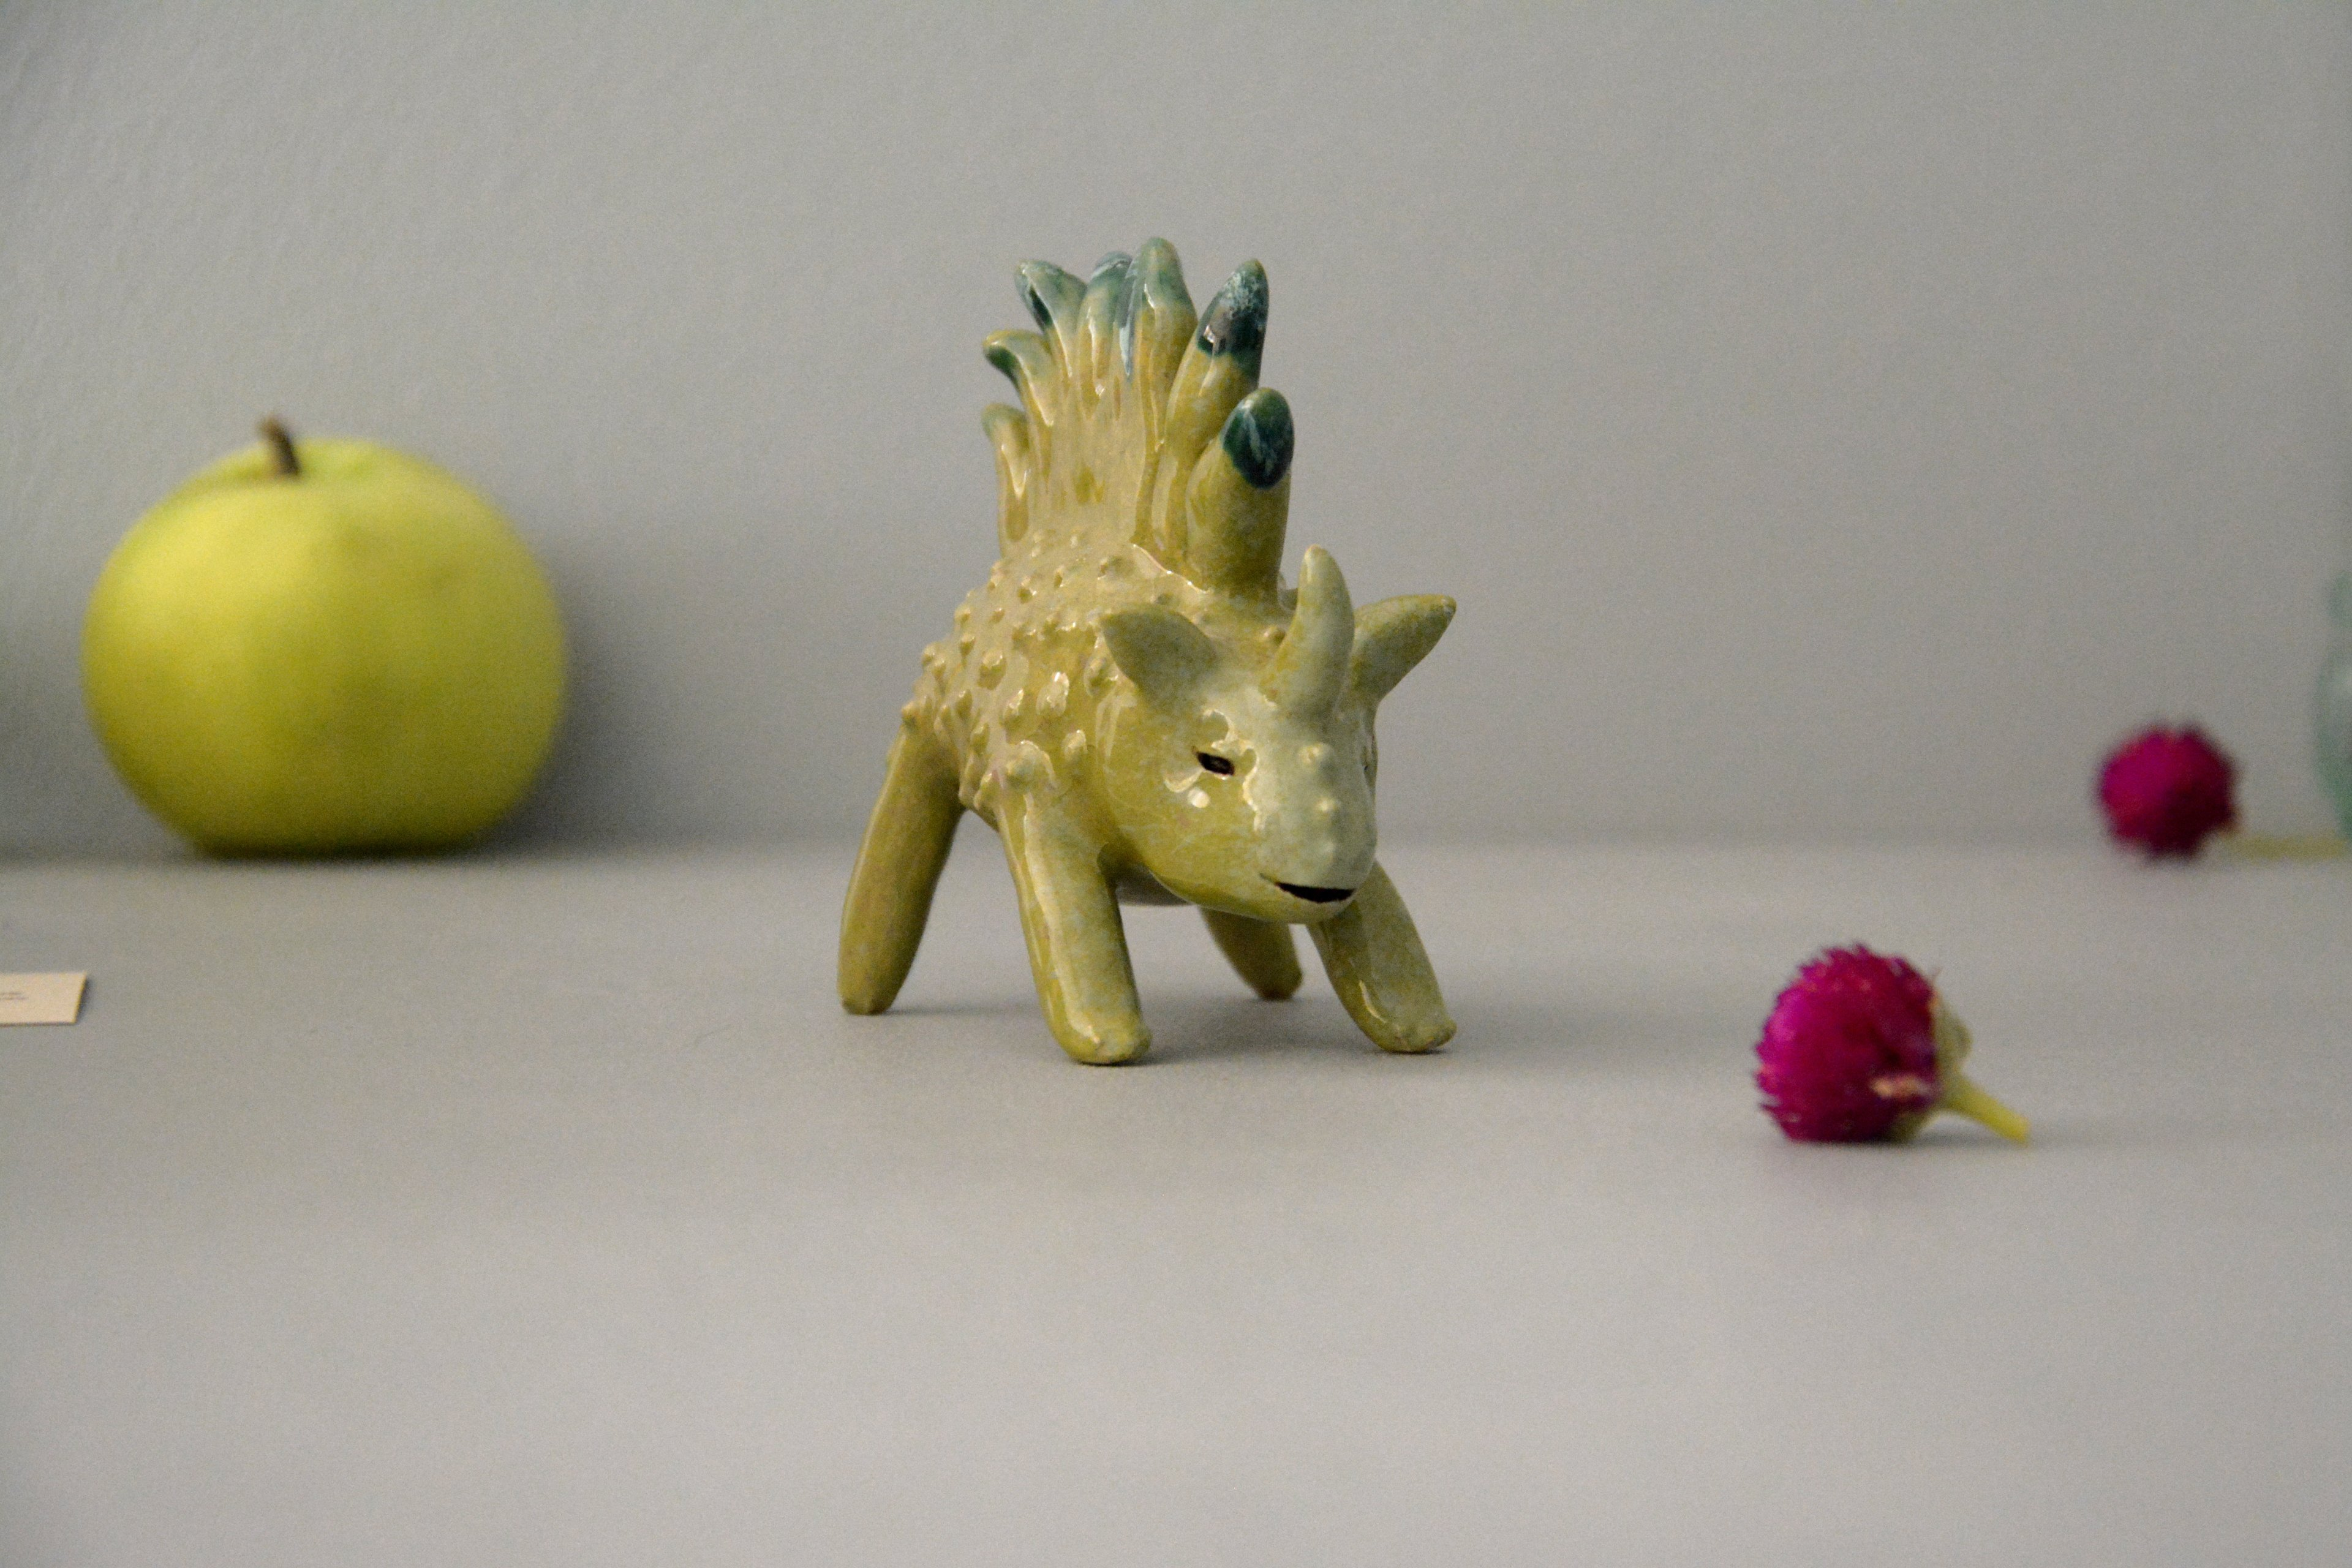 Grassosaur - Ceramic fantastic creatures, height - 6 cm, photo 1 of 6.